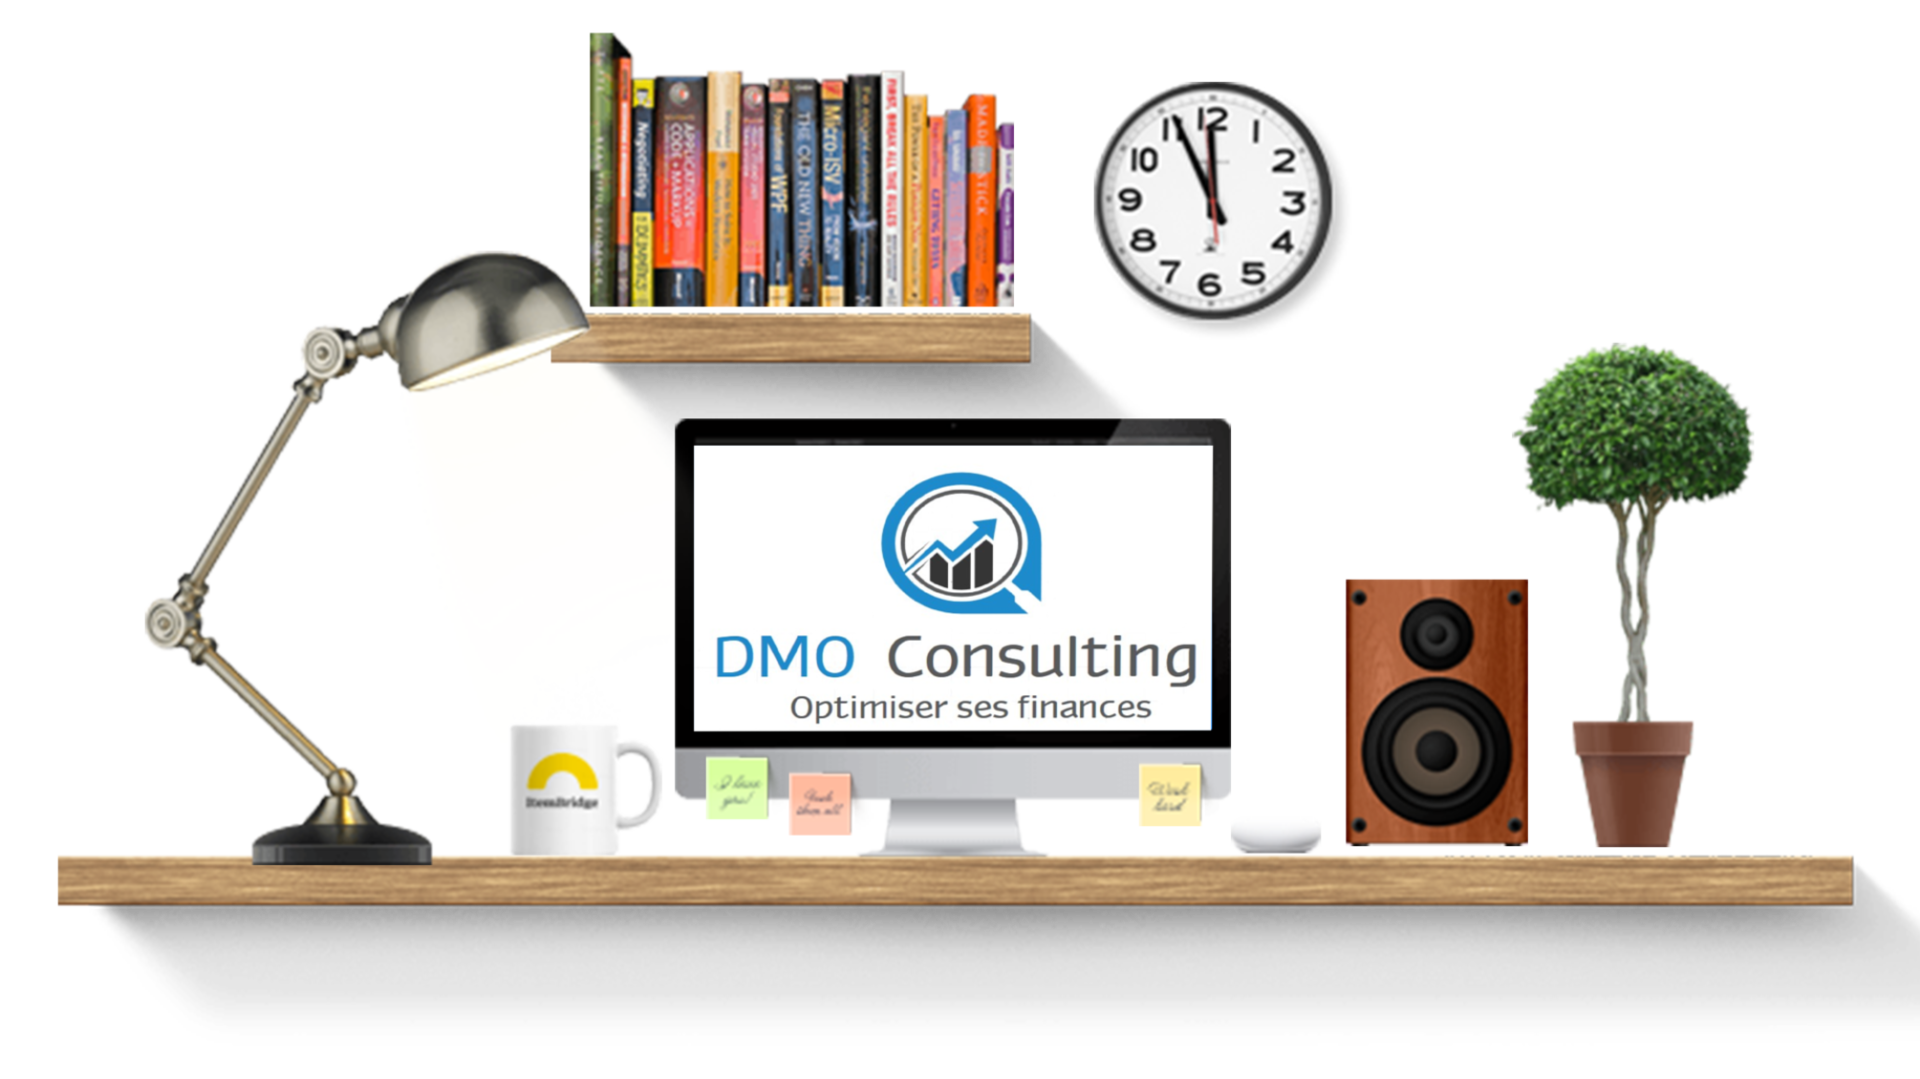 DMO Consulting